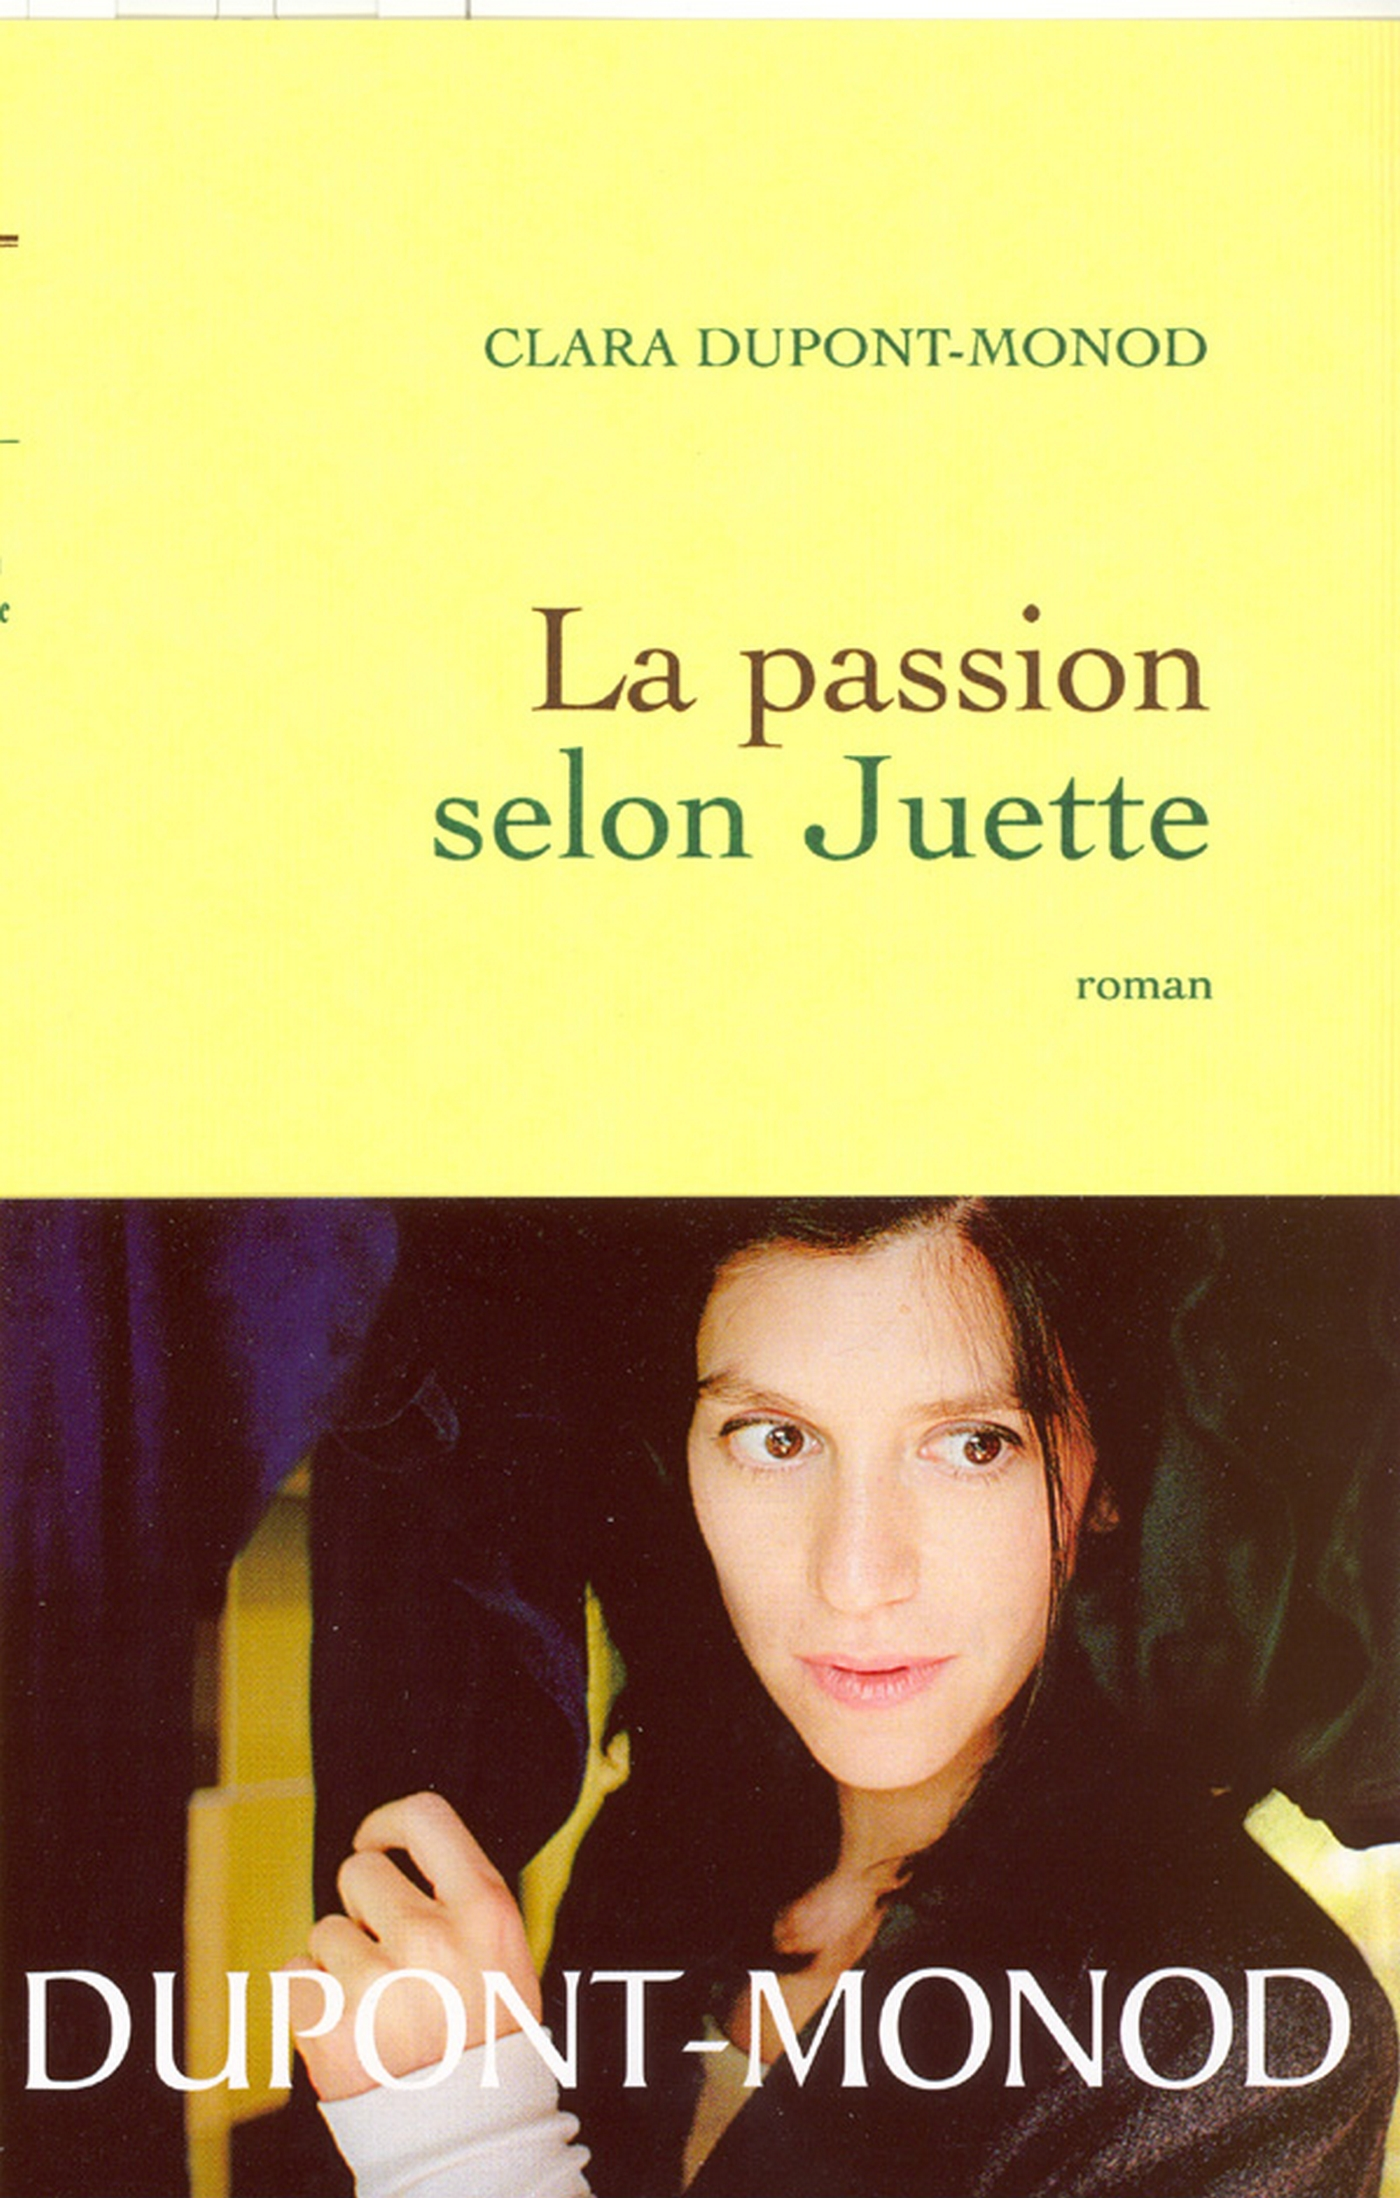 La passion selon Juette